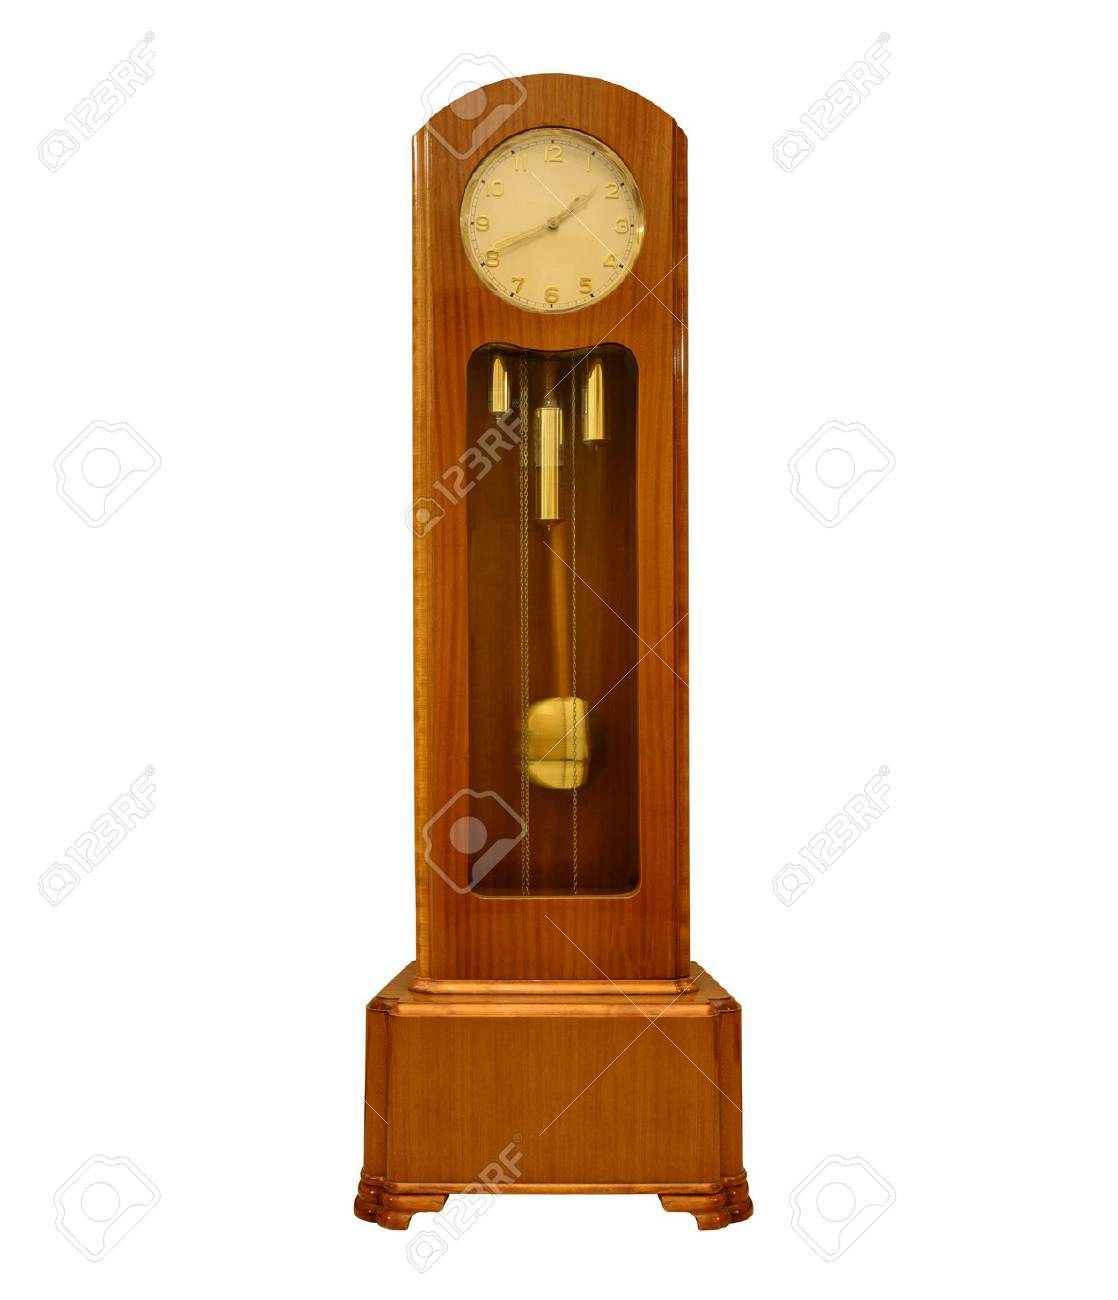 Standuhr Digital Vintage Grandfather Clock On White